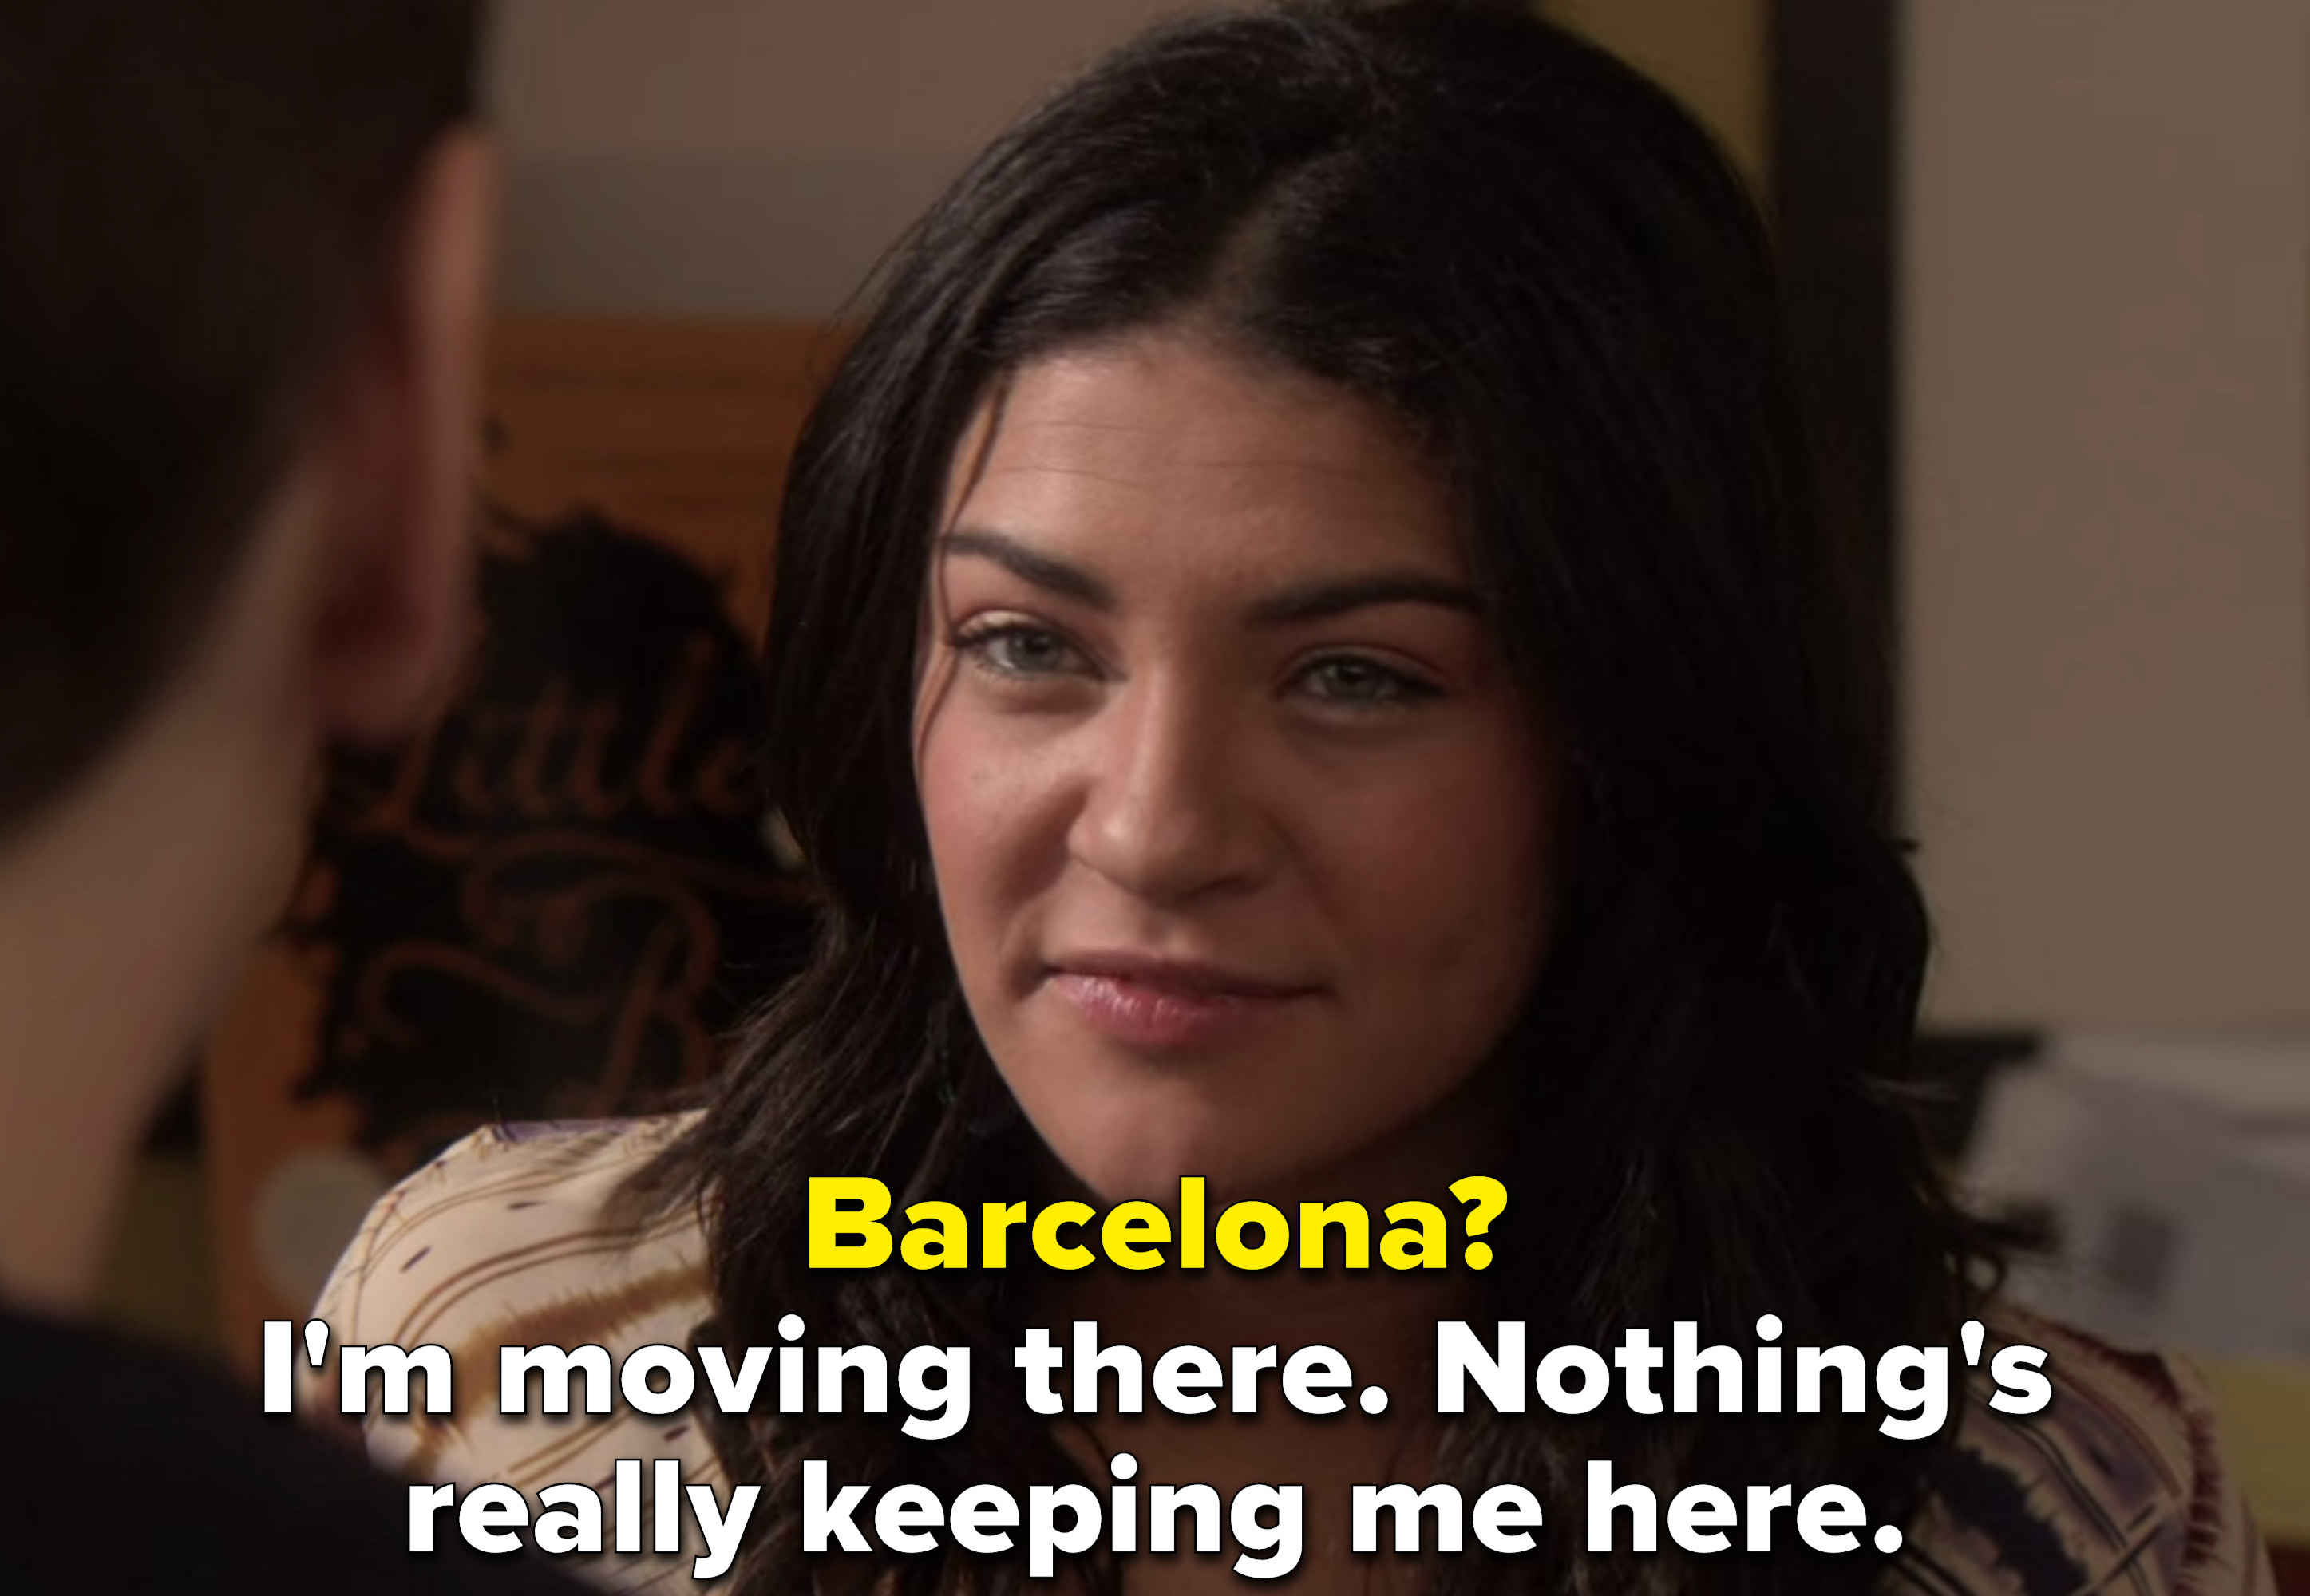 the literary agent asks why Barcelona, and Vanessa says nothing's keeping her in New York